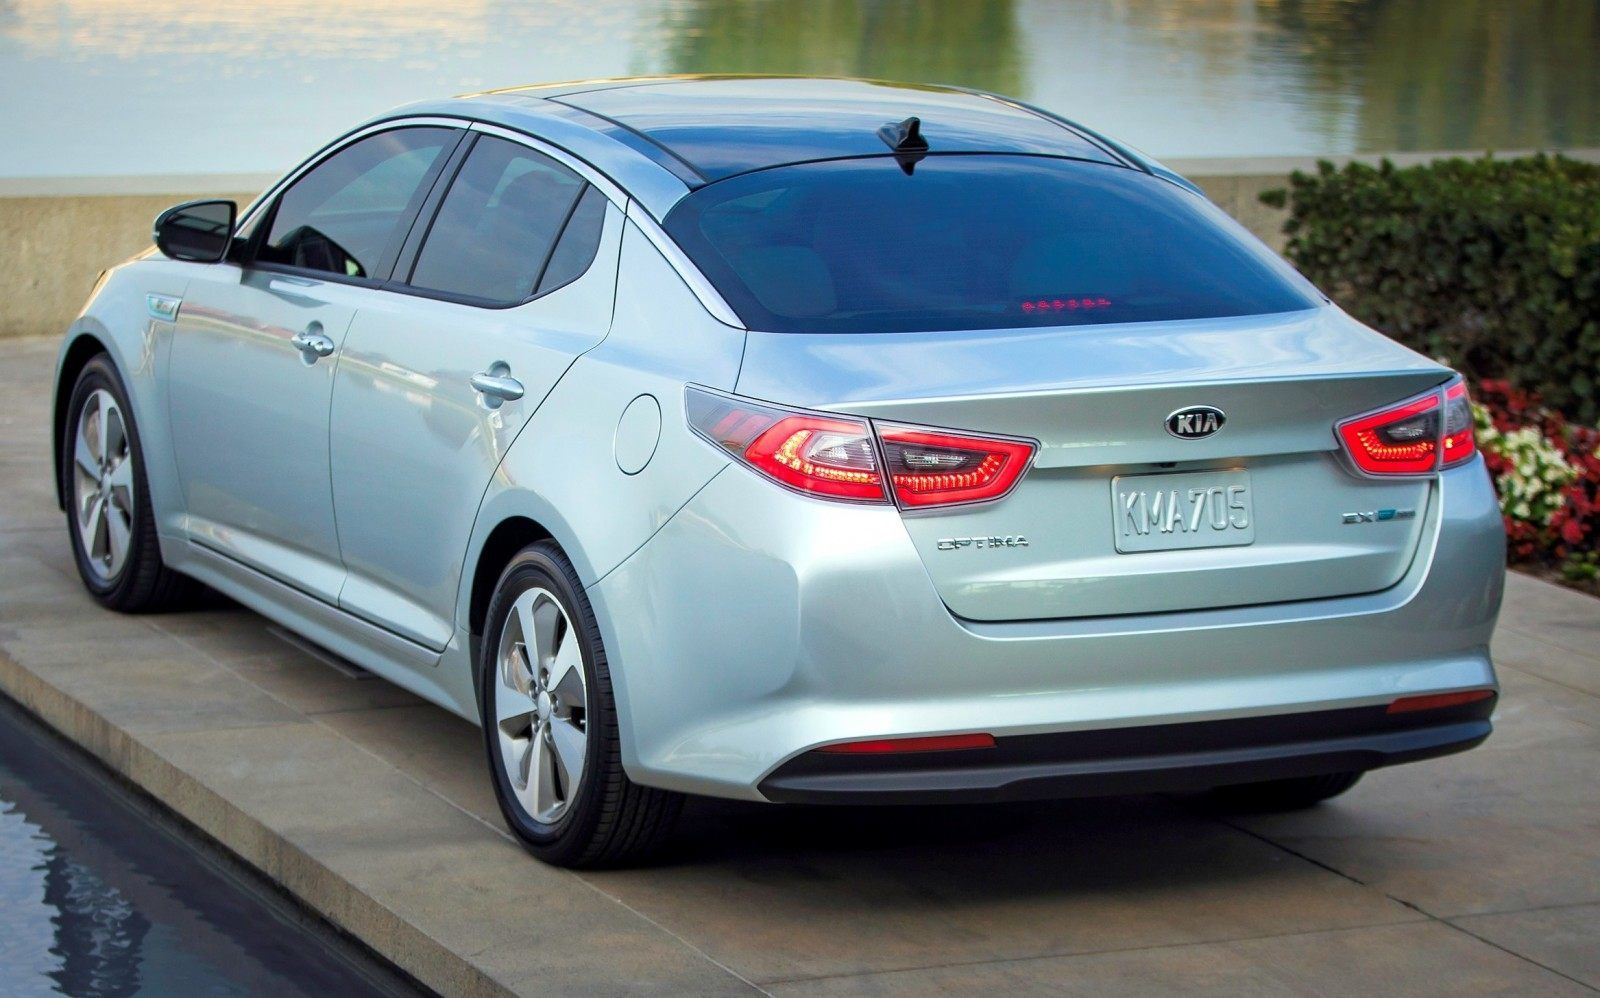 2014 Kia Optima Hybrid Updated With New Grille and LEDs Front and Rear - Specs, Features and Pricing 18